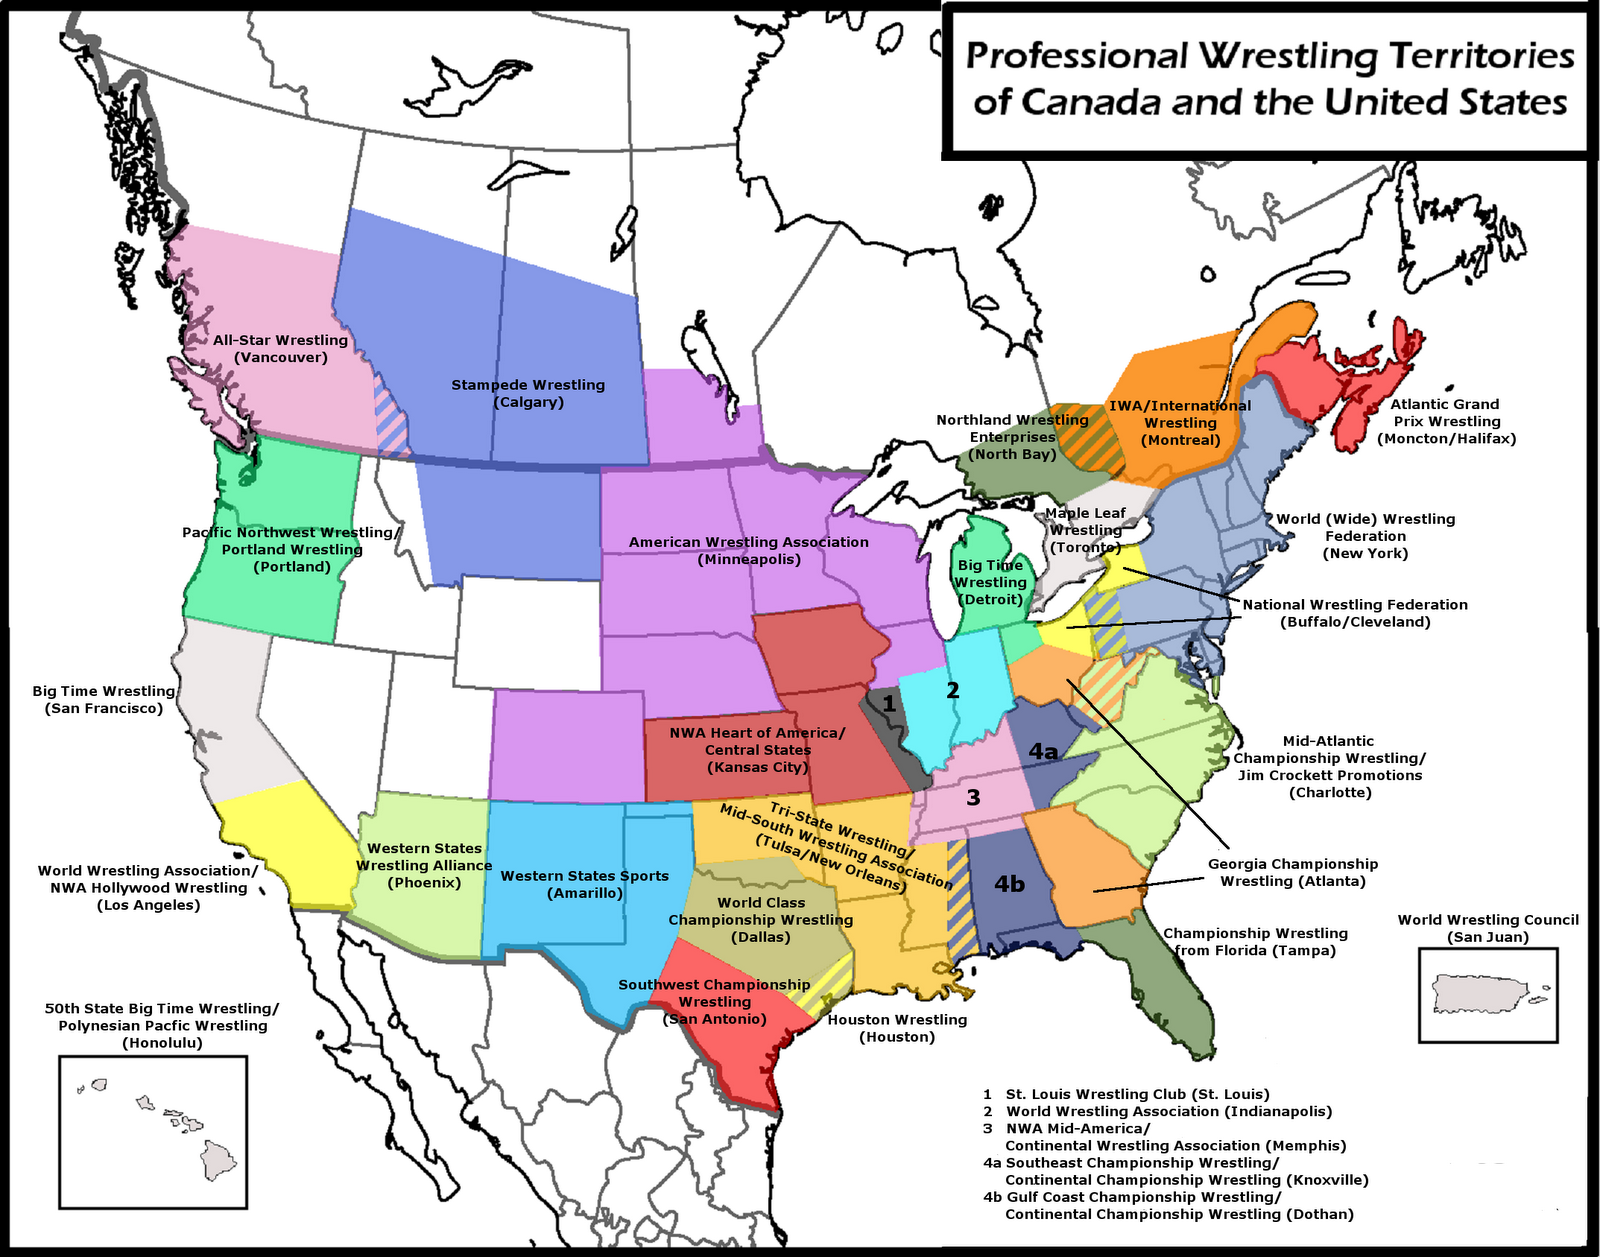 Pro wrestling territories (clickable) Quiz